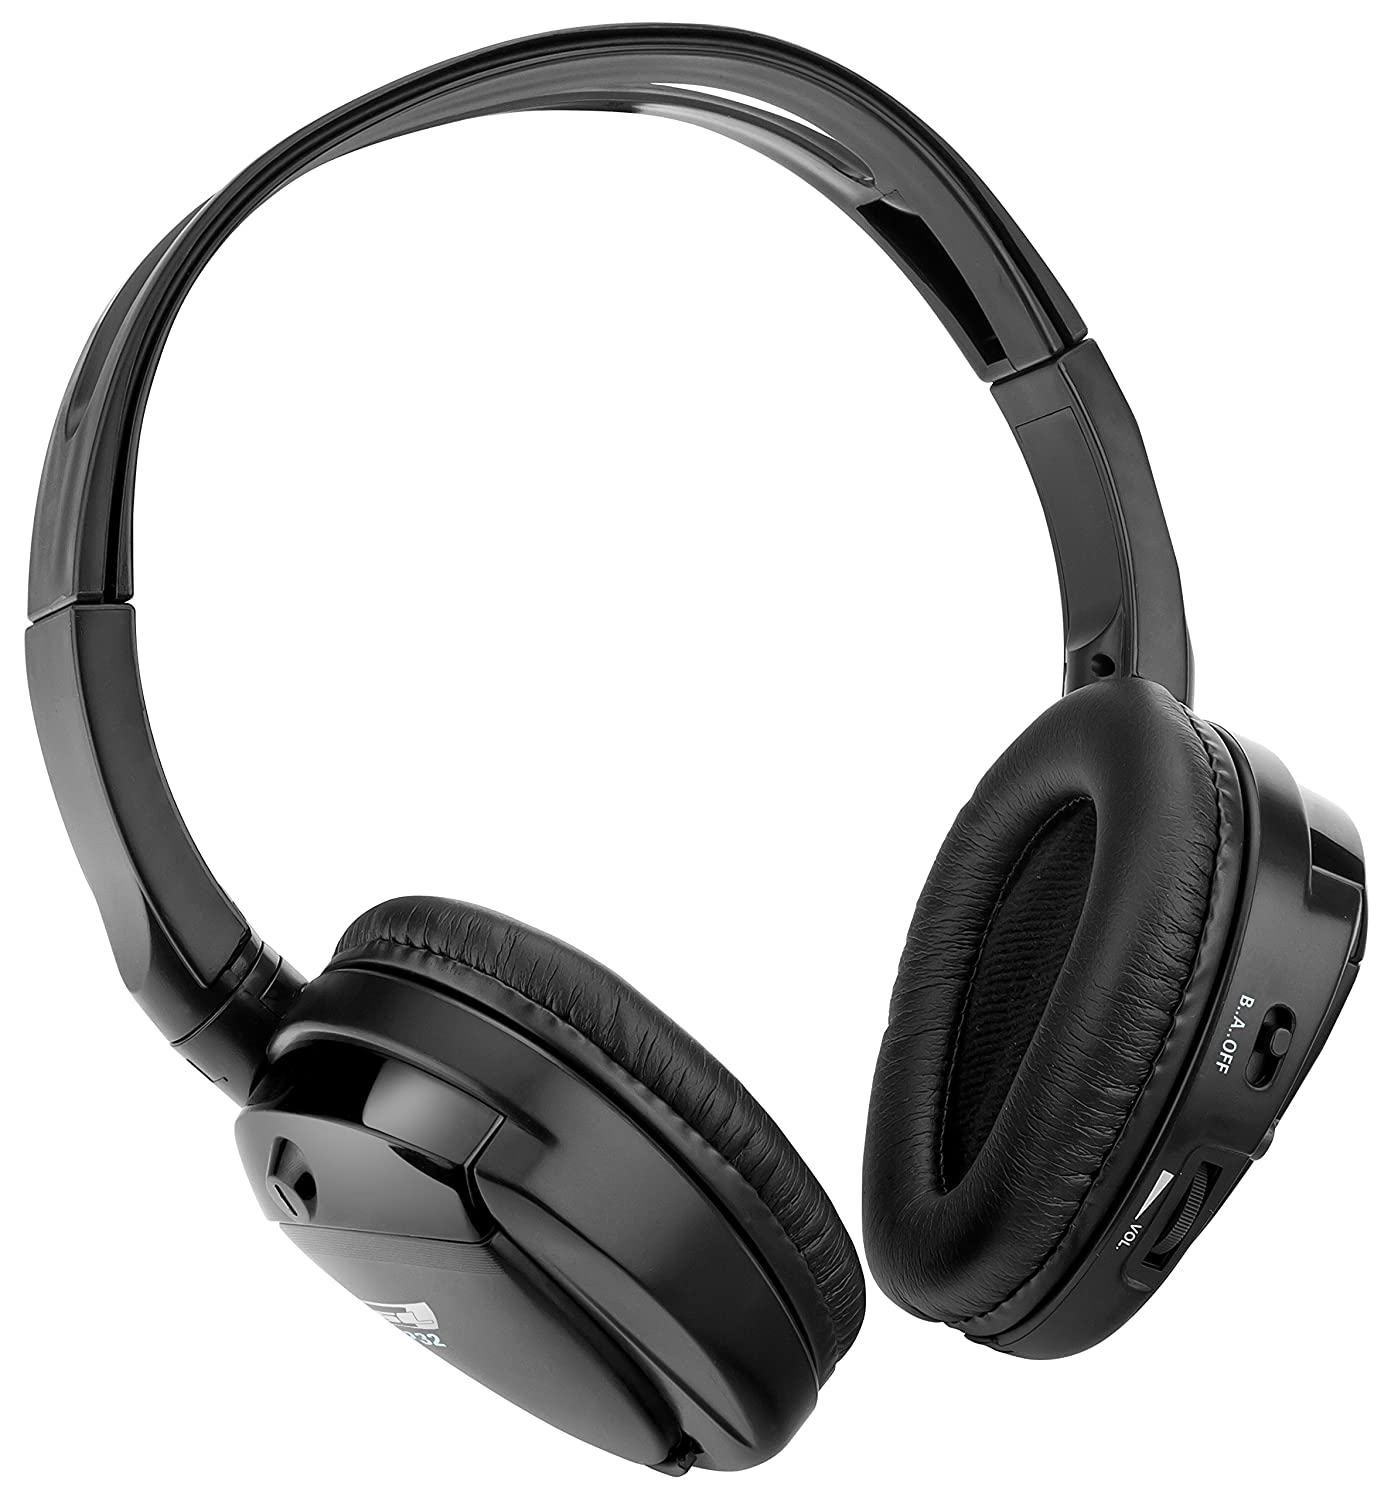 7.50 x 7.00 x 2.00 Black 7.50 x 7.00 x 2.00 Sound Storm Laboratories SHP32 Dual Channel Infrared Foldable Cordless Headphone